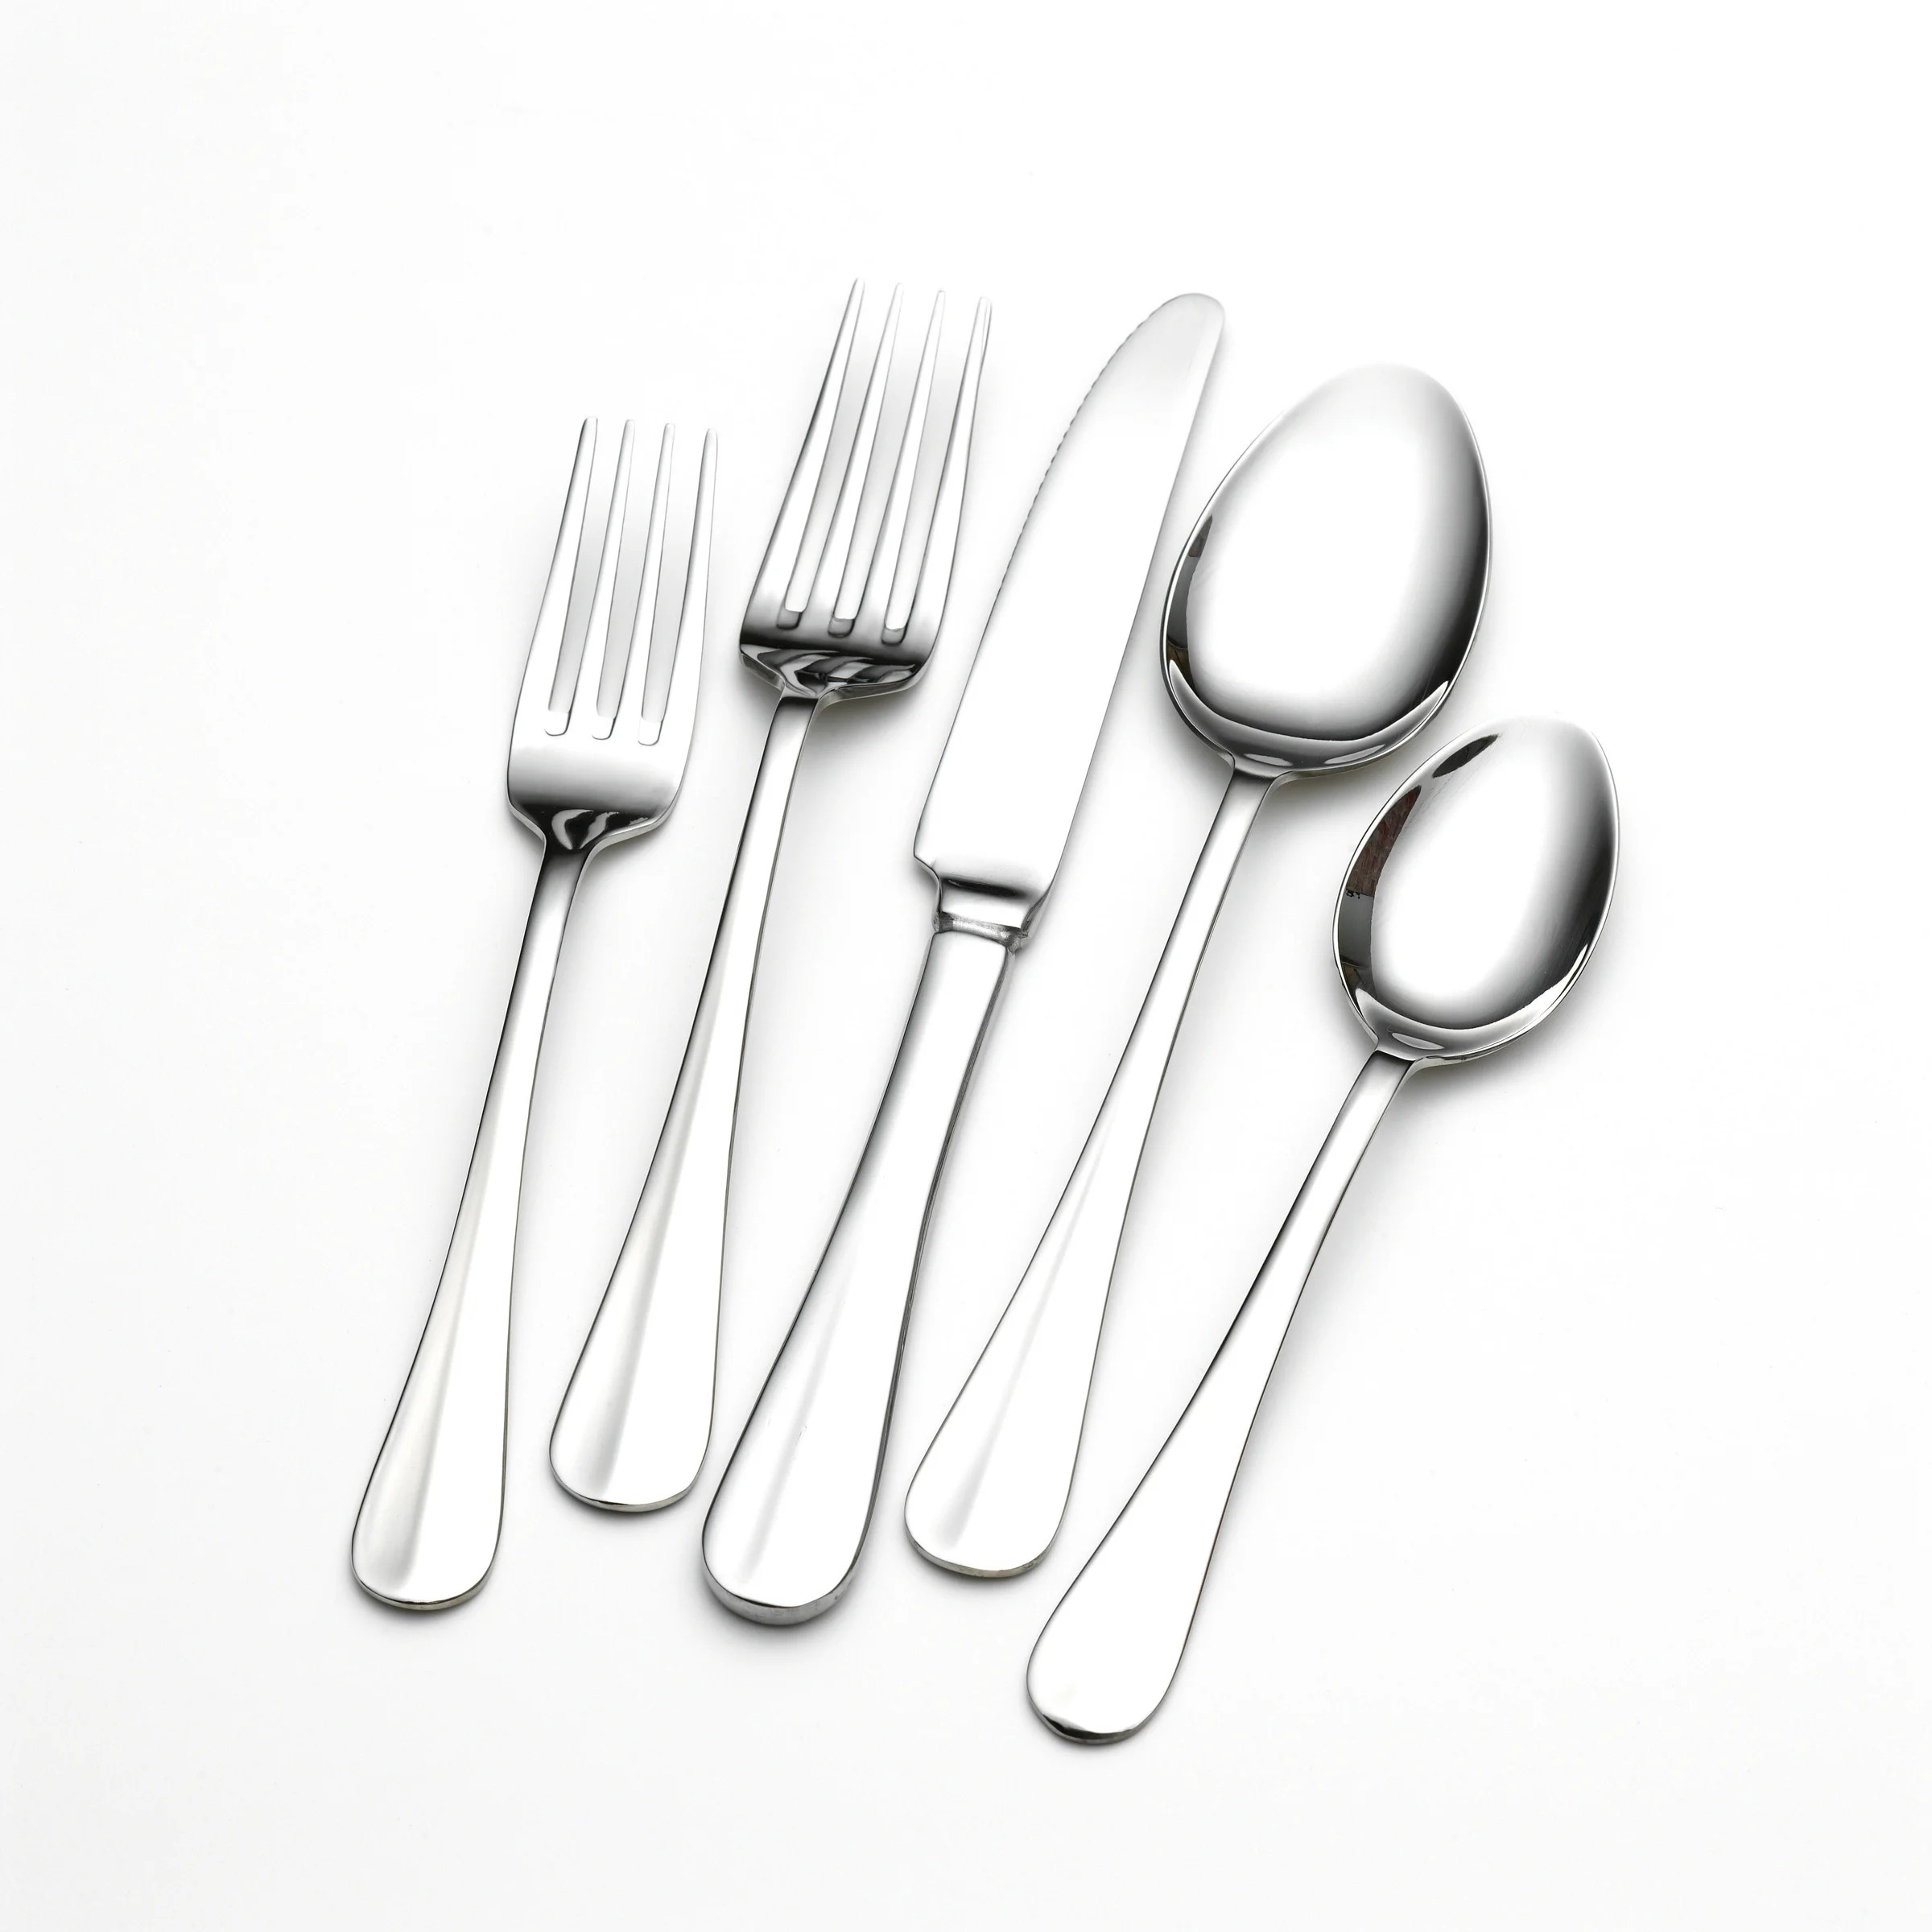 Discount Stainless Flatware Towle Living Hartford Stainless Steel 101 Piece Flatware Set